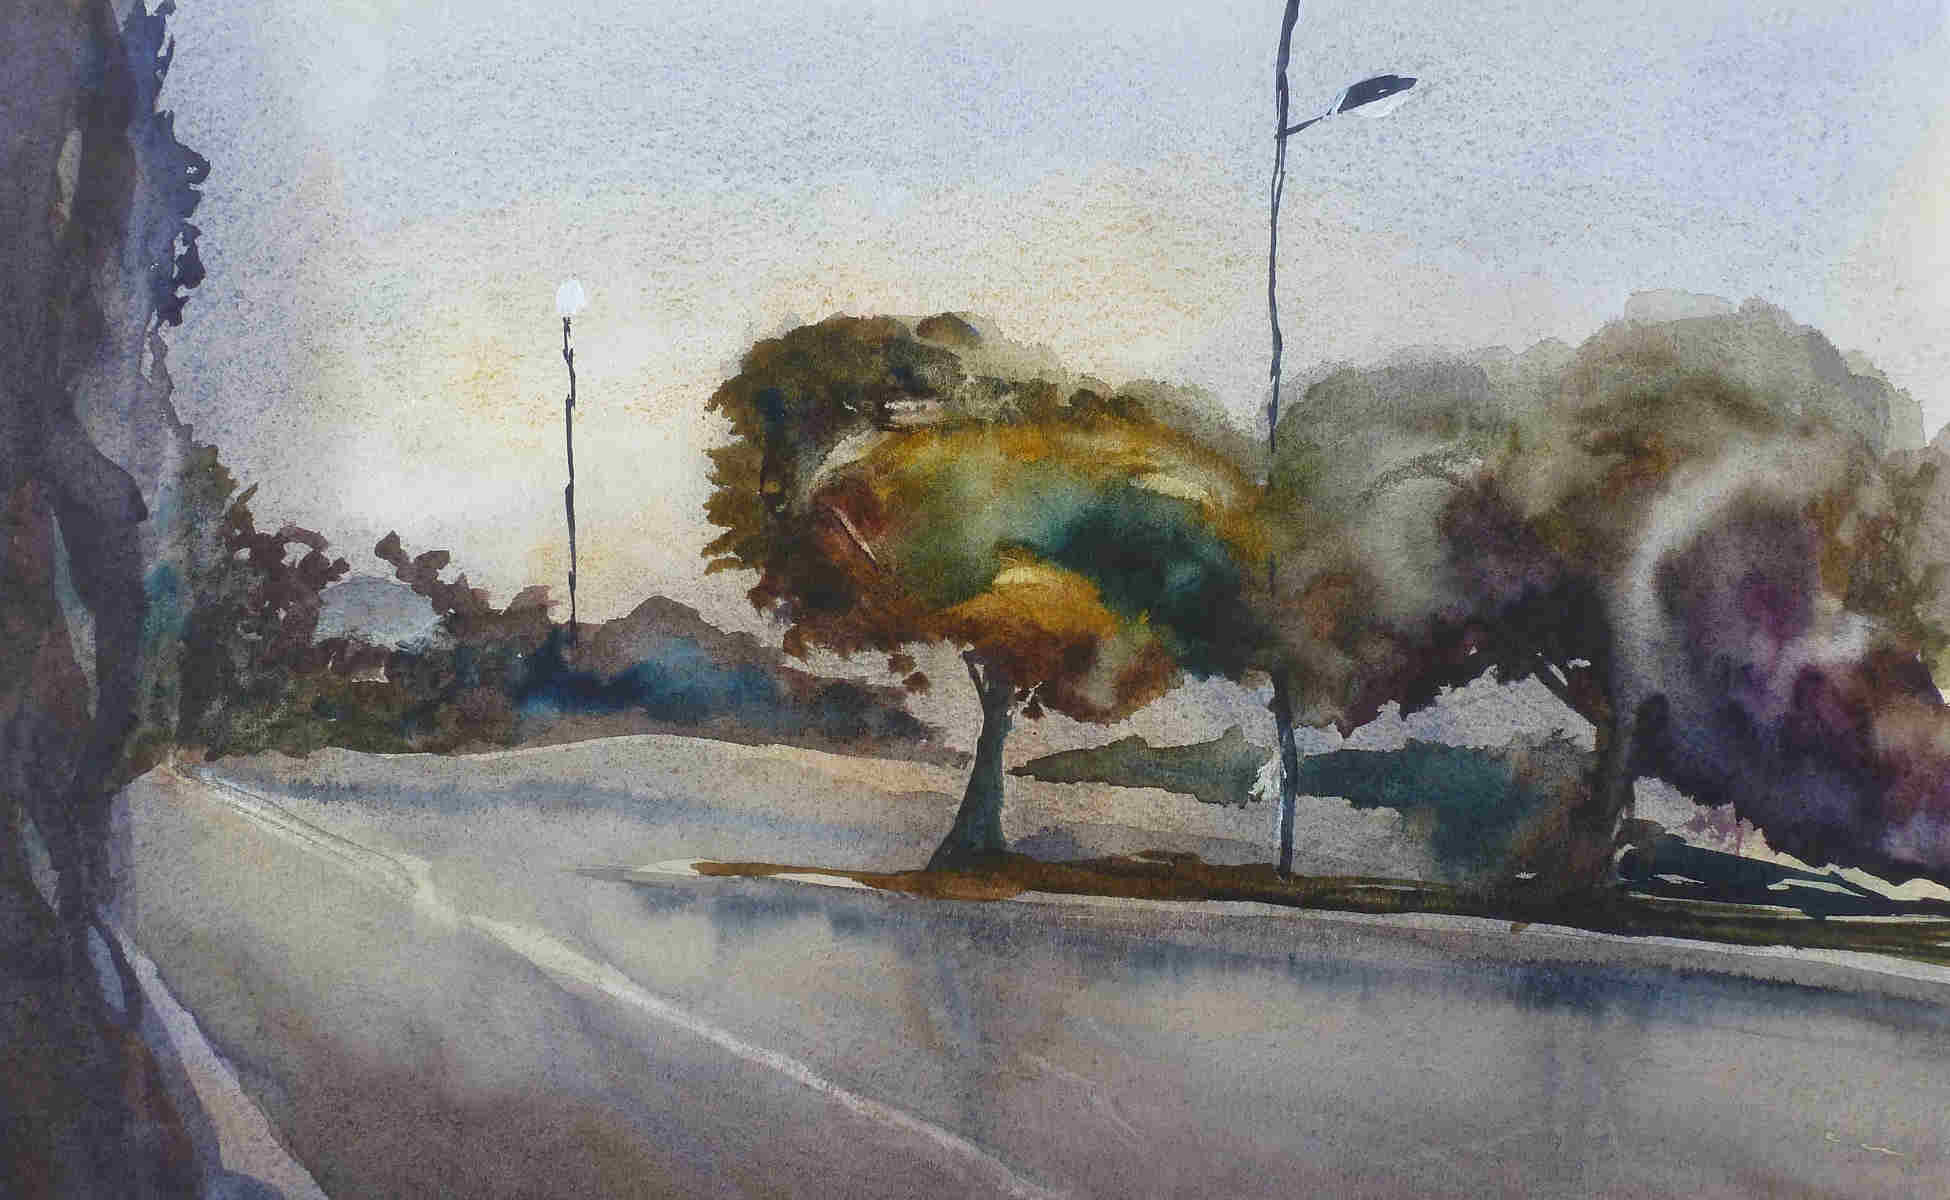 Watercolor painting Remy Lach wet road landscape